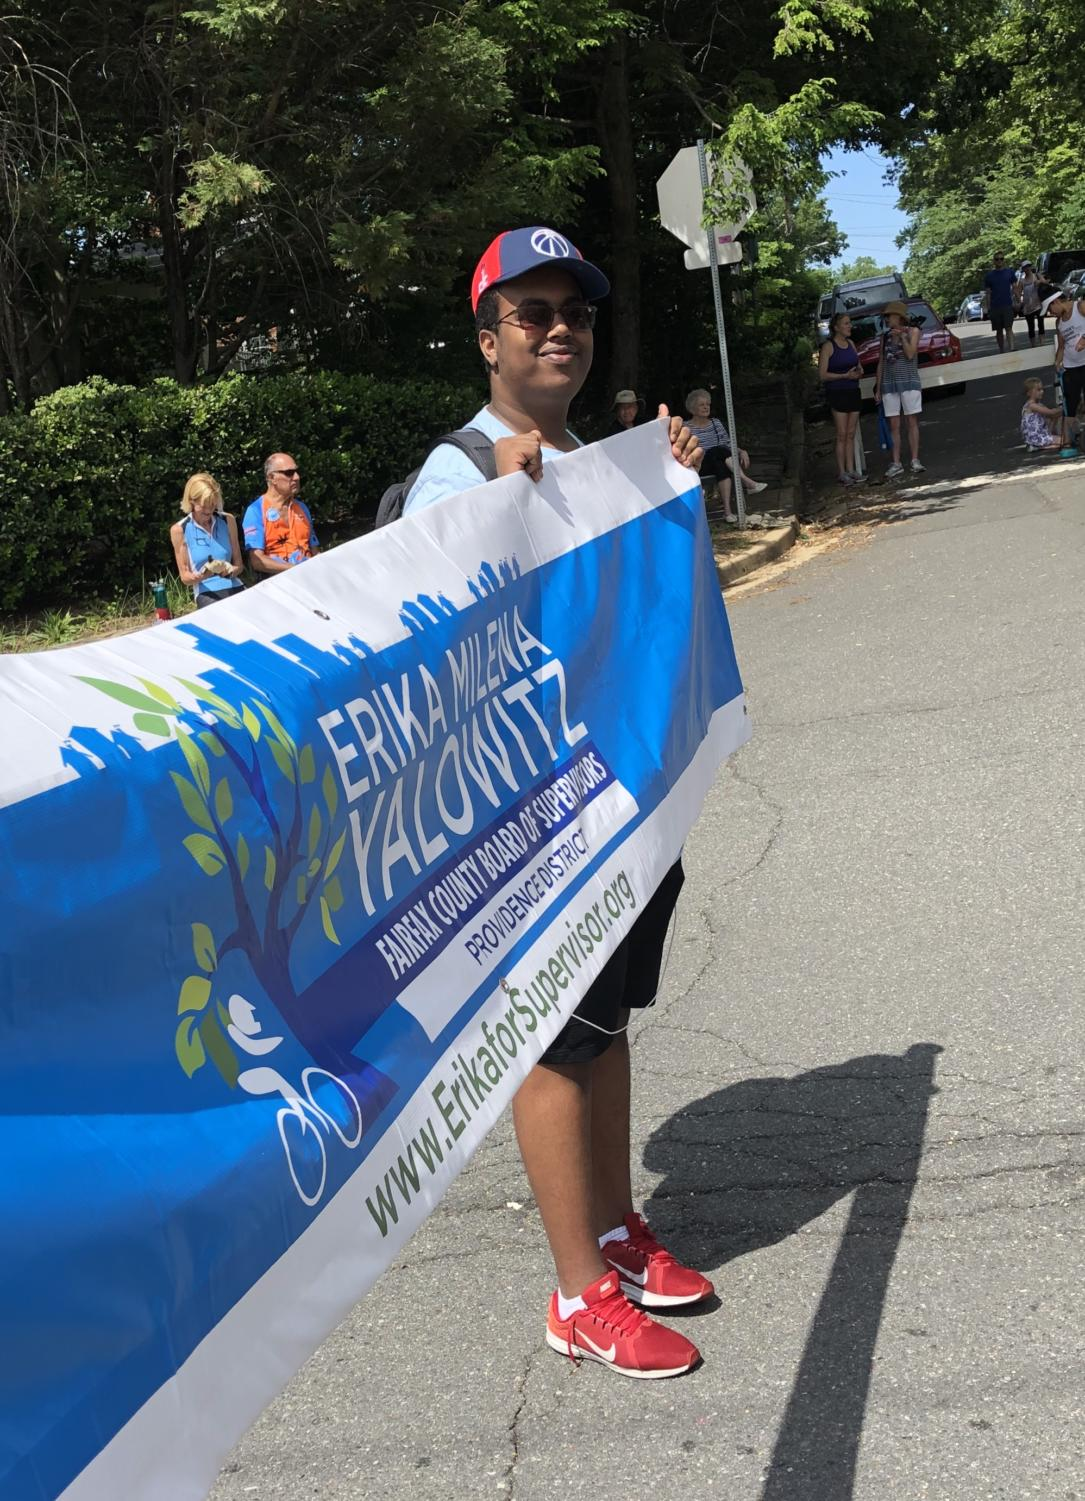 Sophomore Mohamed Mohamed showed his support for Erika Yalowitz by holding her banner during the Memorial Day parade in  Falls Church on May 27.